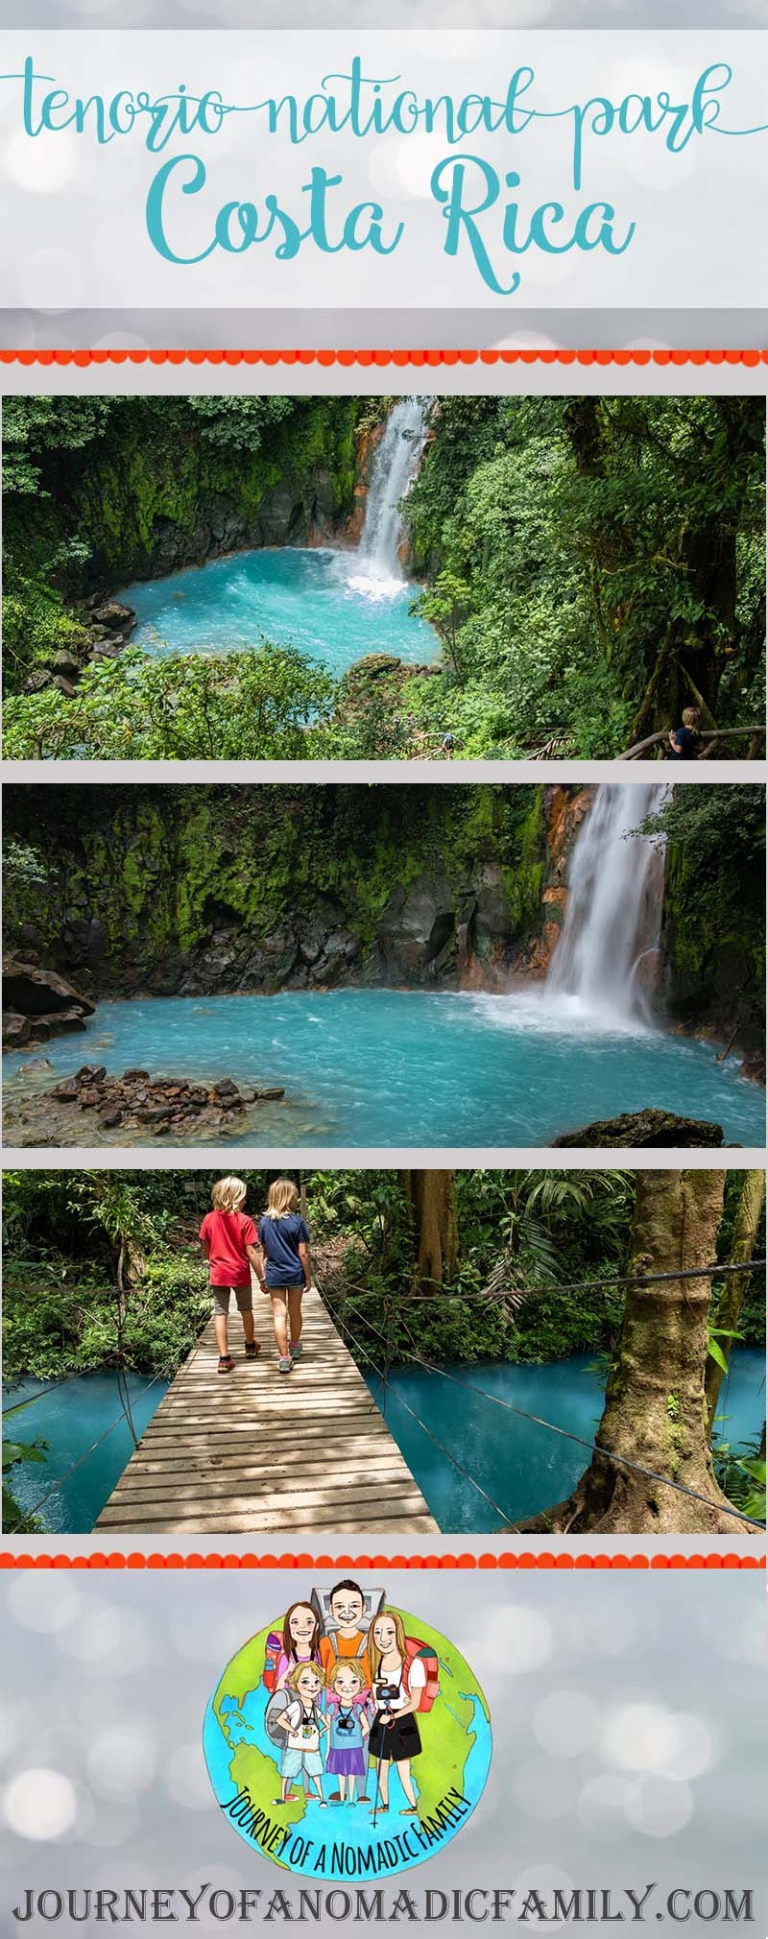 Why we think Tenorio National Park is the best national park in Costa Rica for kids!